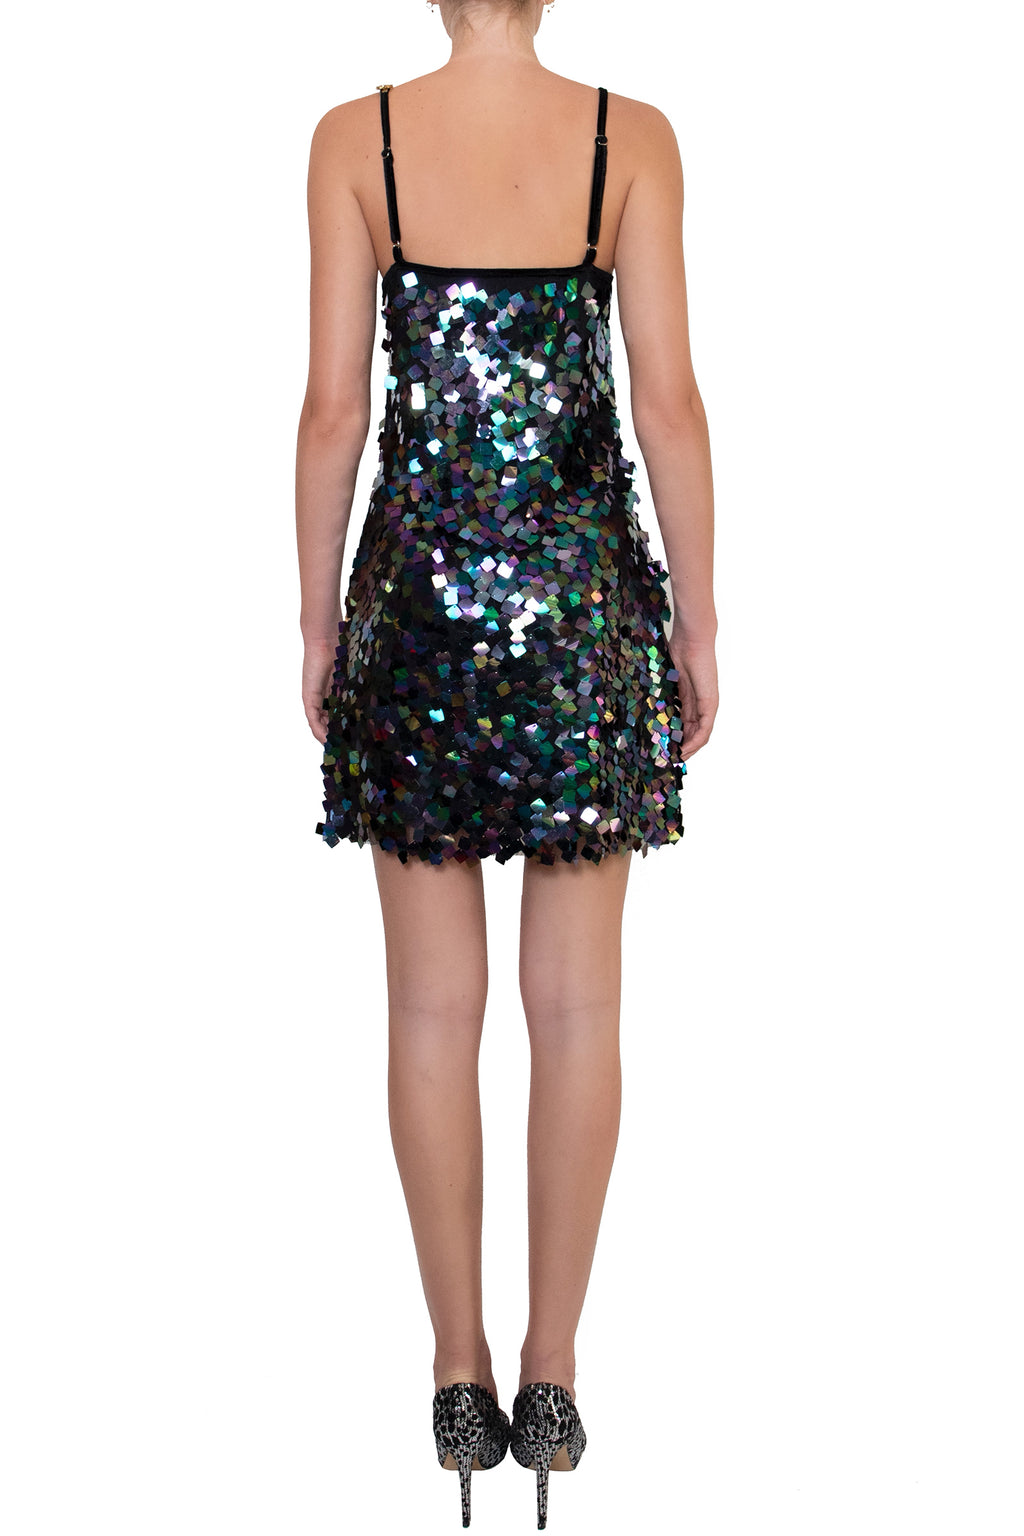 Ilona Rich Embellished Sequin Metallic Iridescent Dress